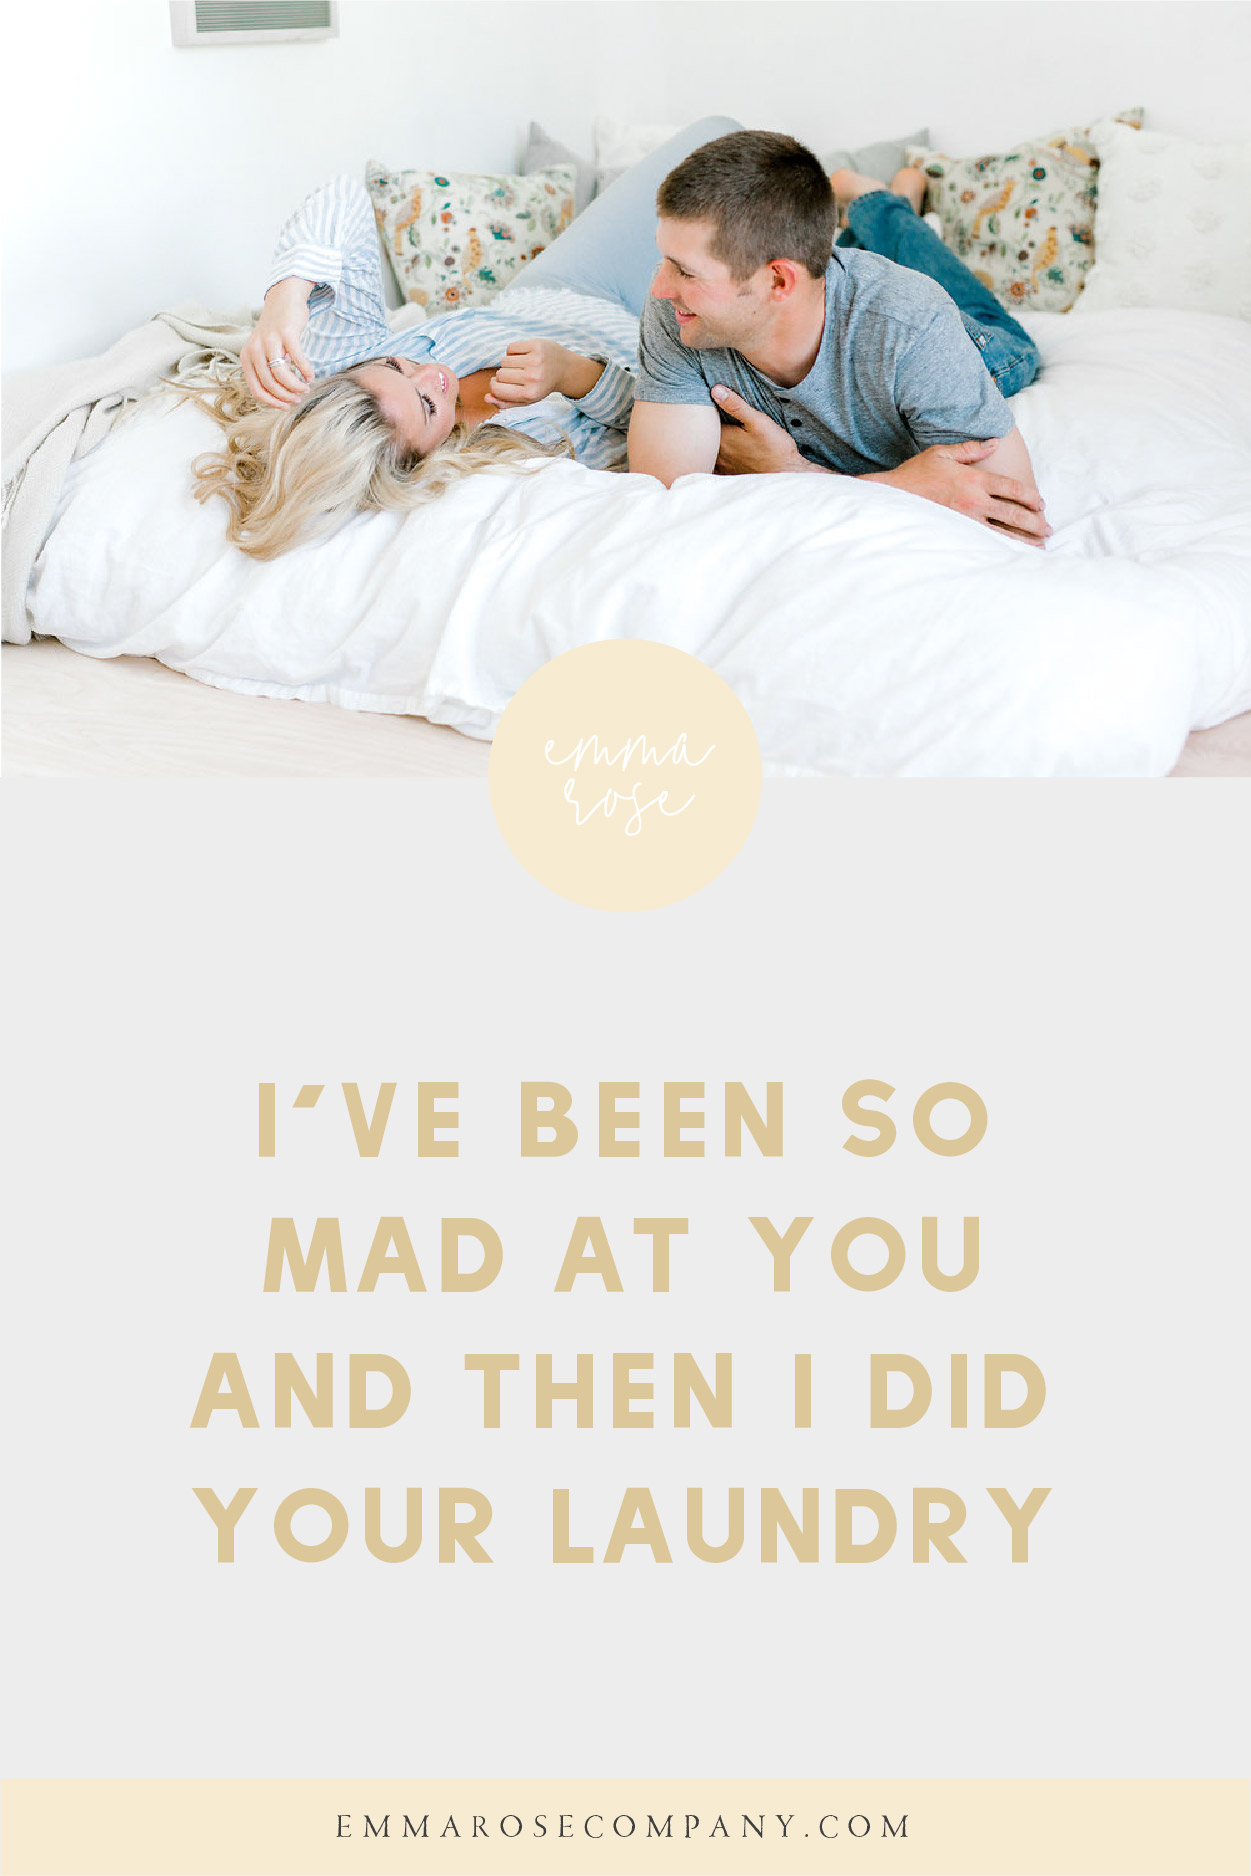 I've been so mad at you, and then I did your laundry_Primary.jpg